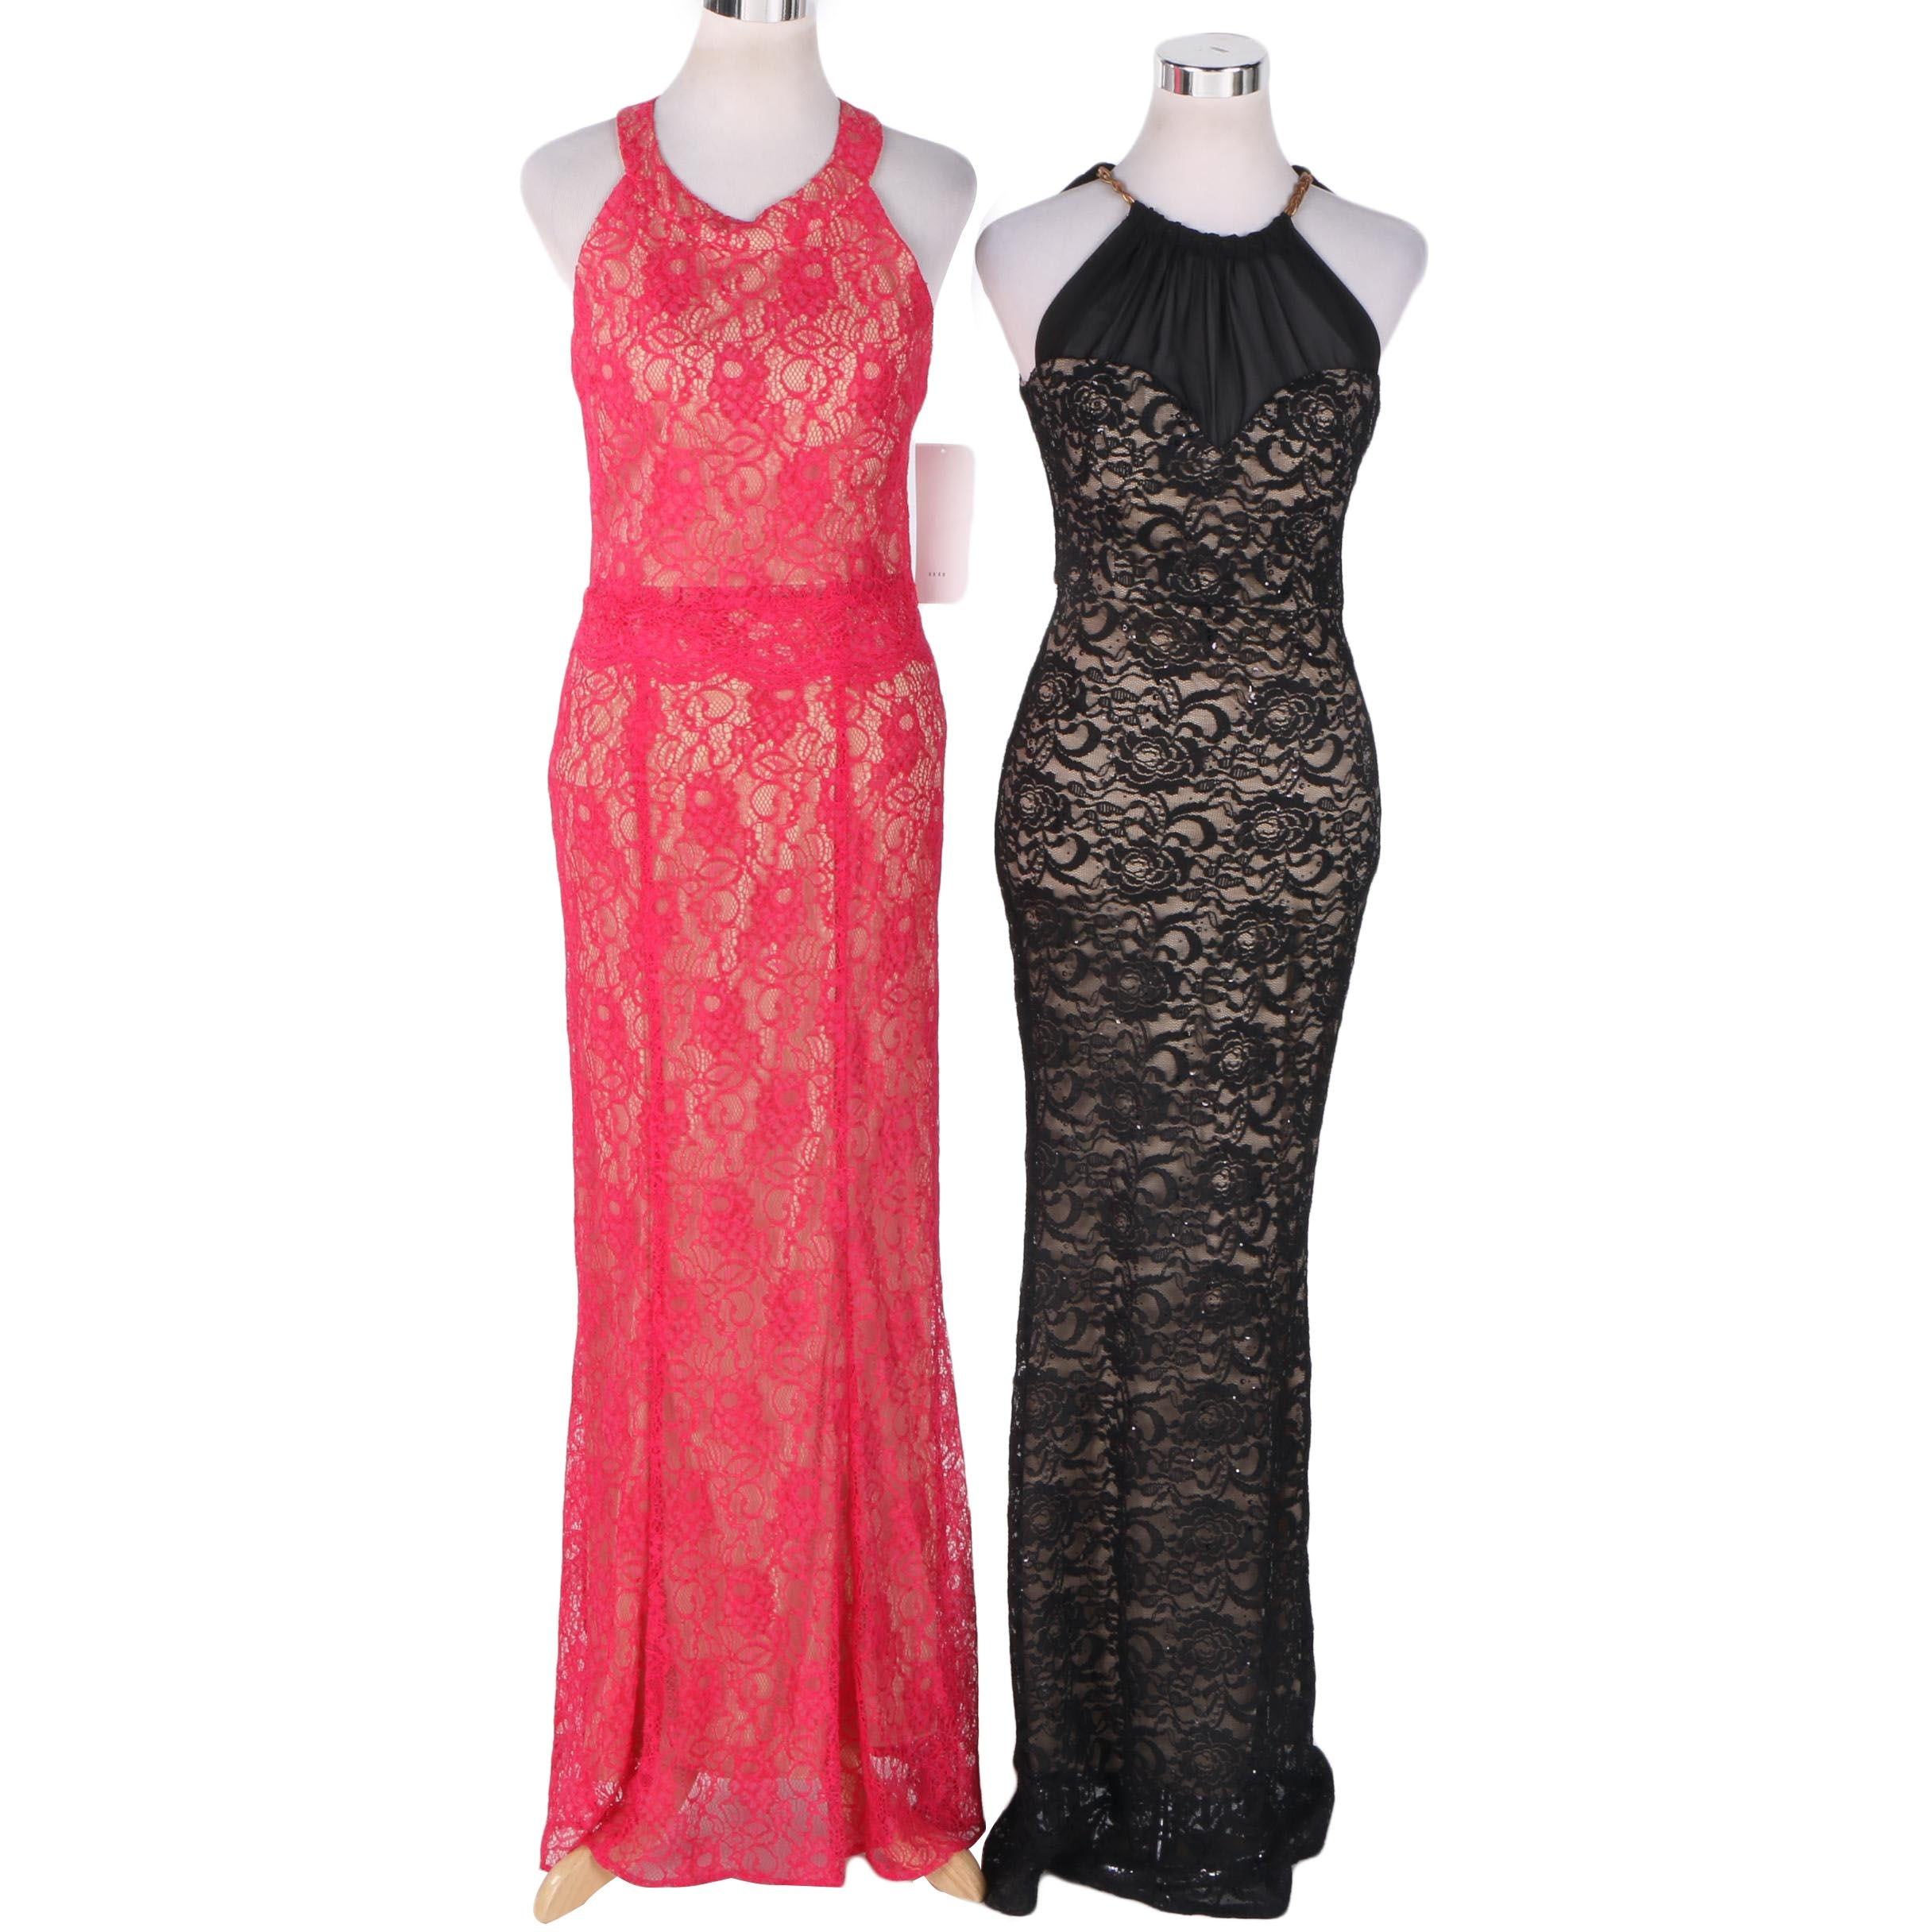 Formal Gowns by Maria Cristina and F.I.E.S.T.A Fashion